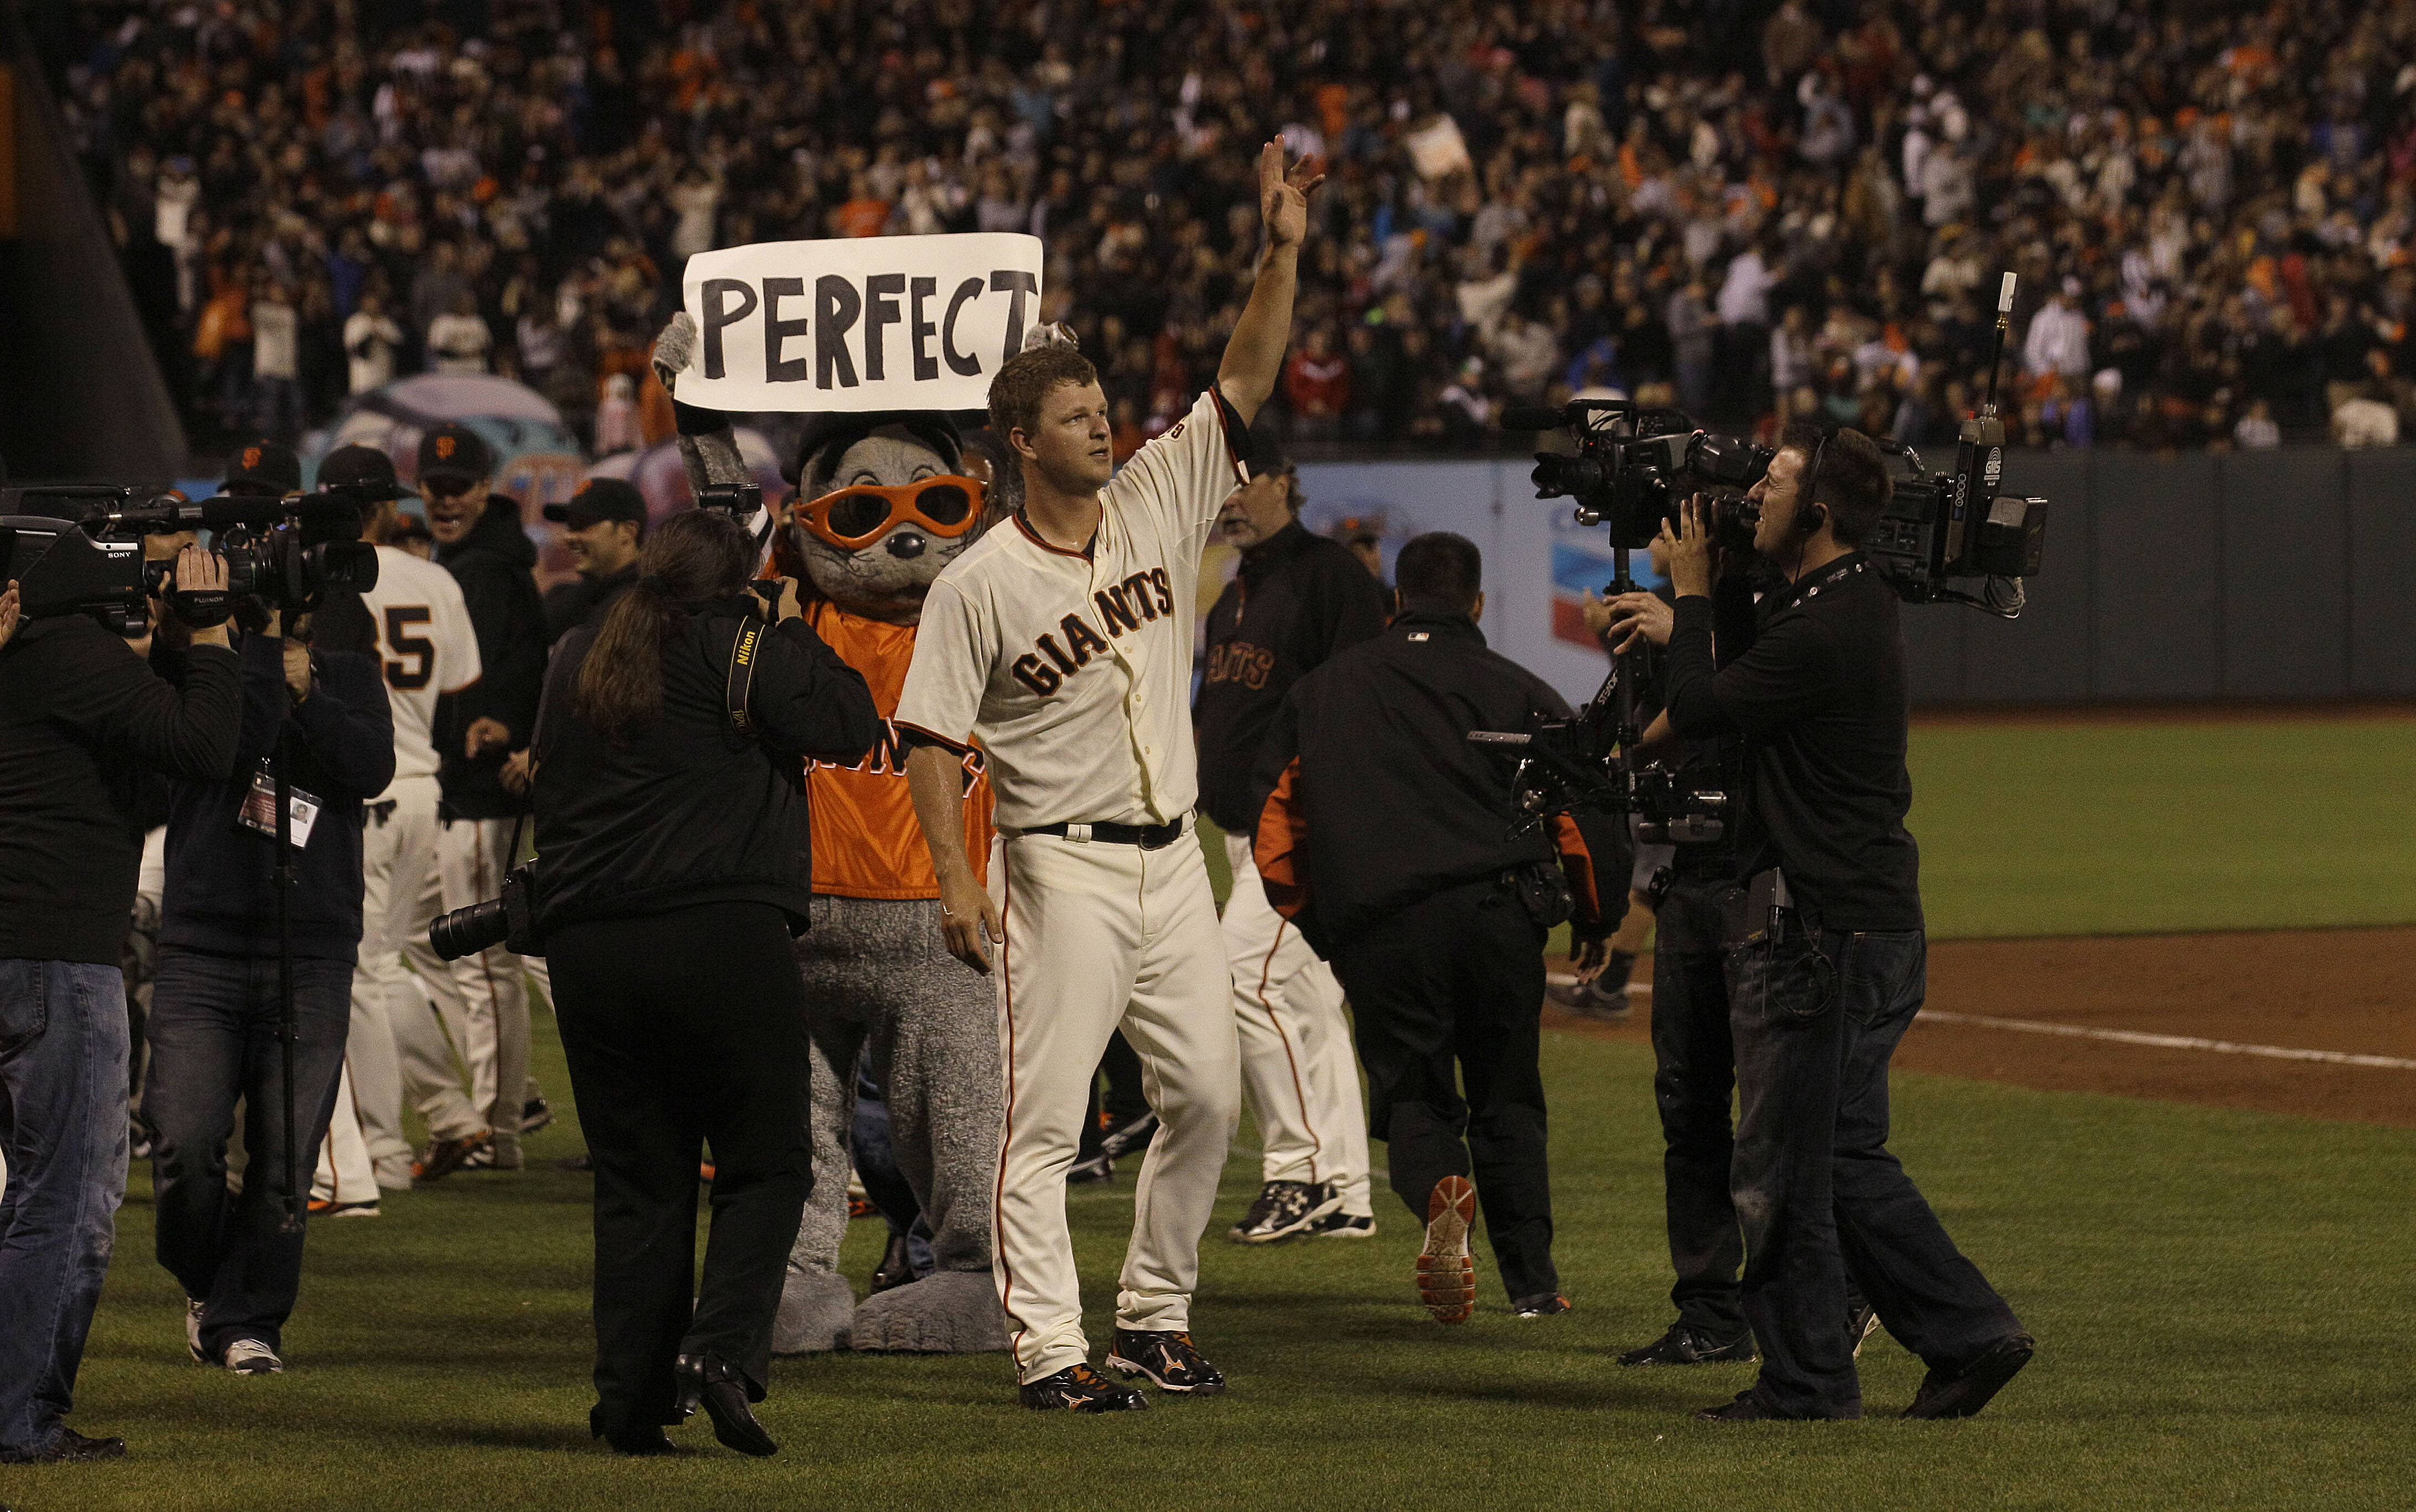 San Francisco Giants pitcher Matt Cain celebrates after his perfect game.